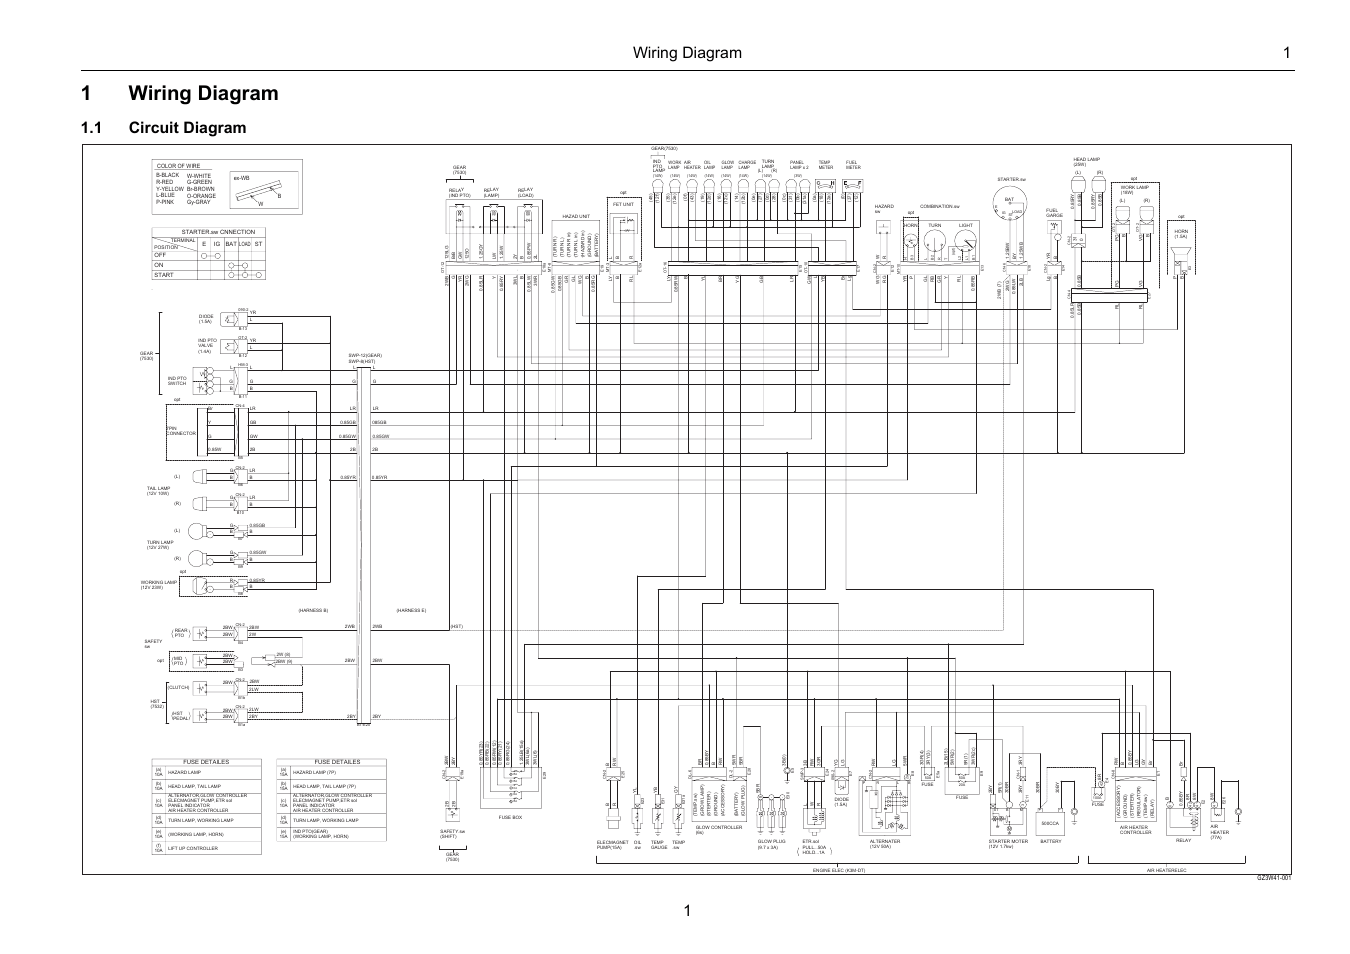 1wiring diagram, Wiring diagram 1 1, 1 circuit diagram